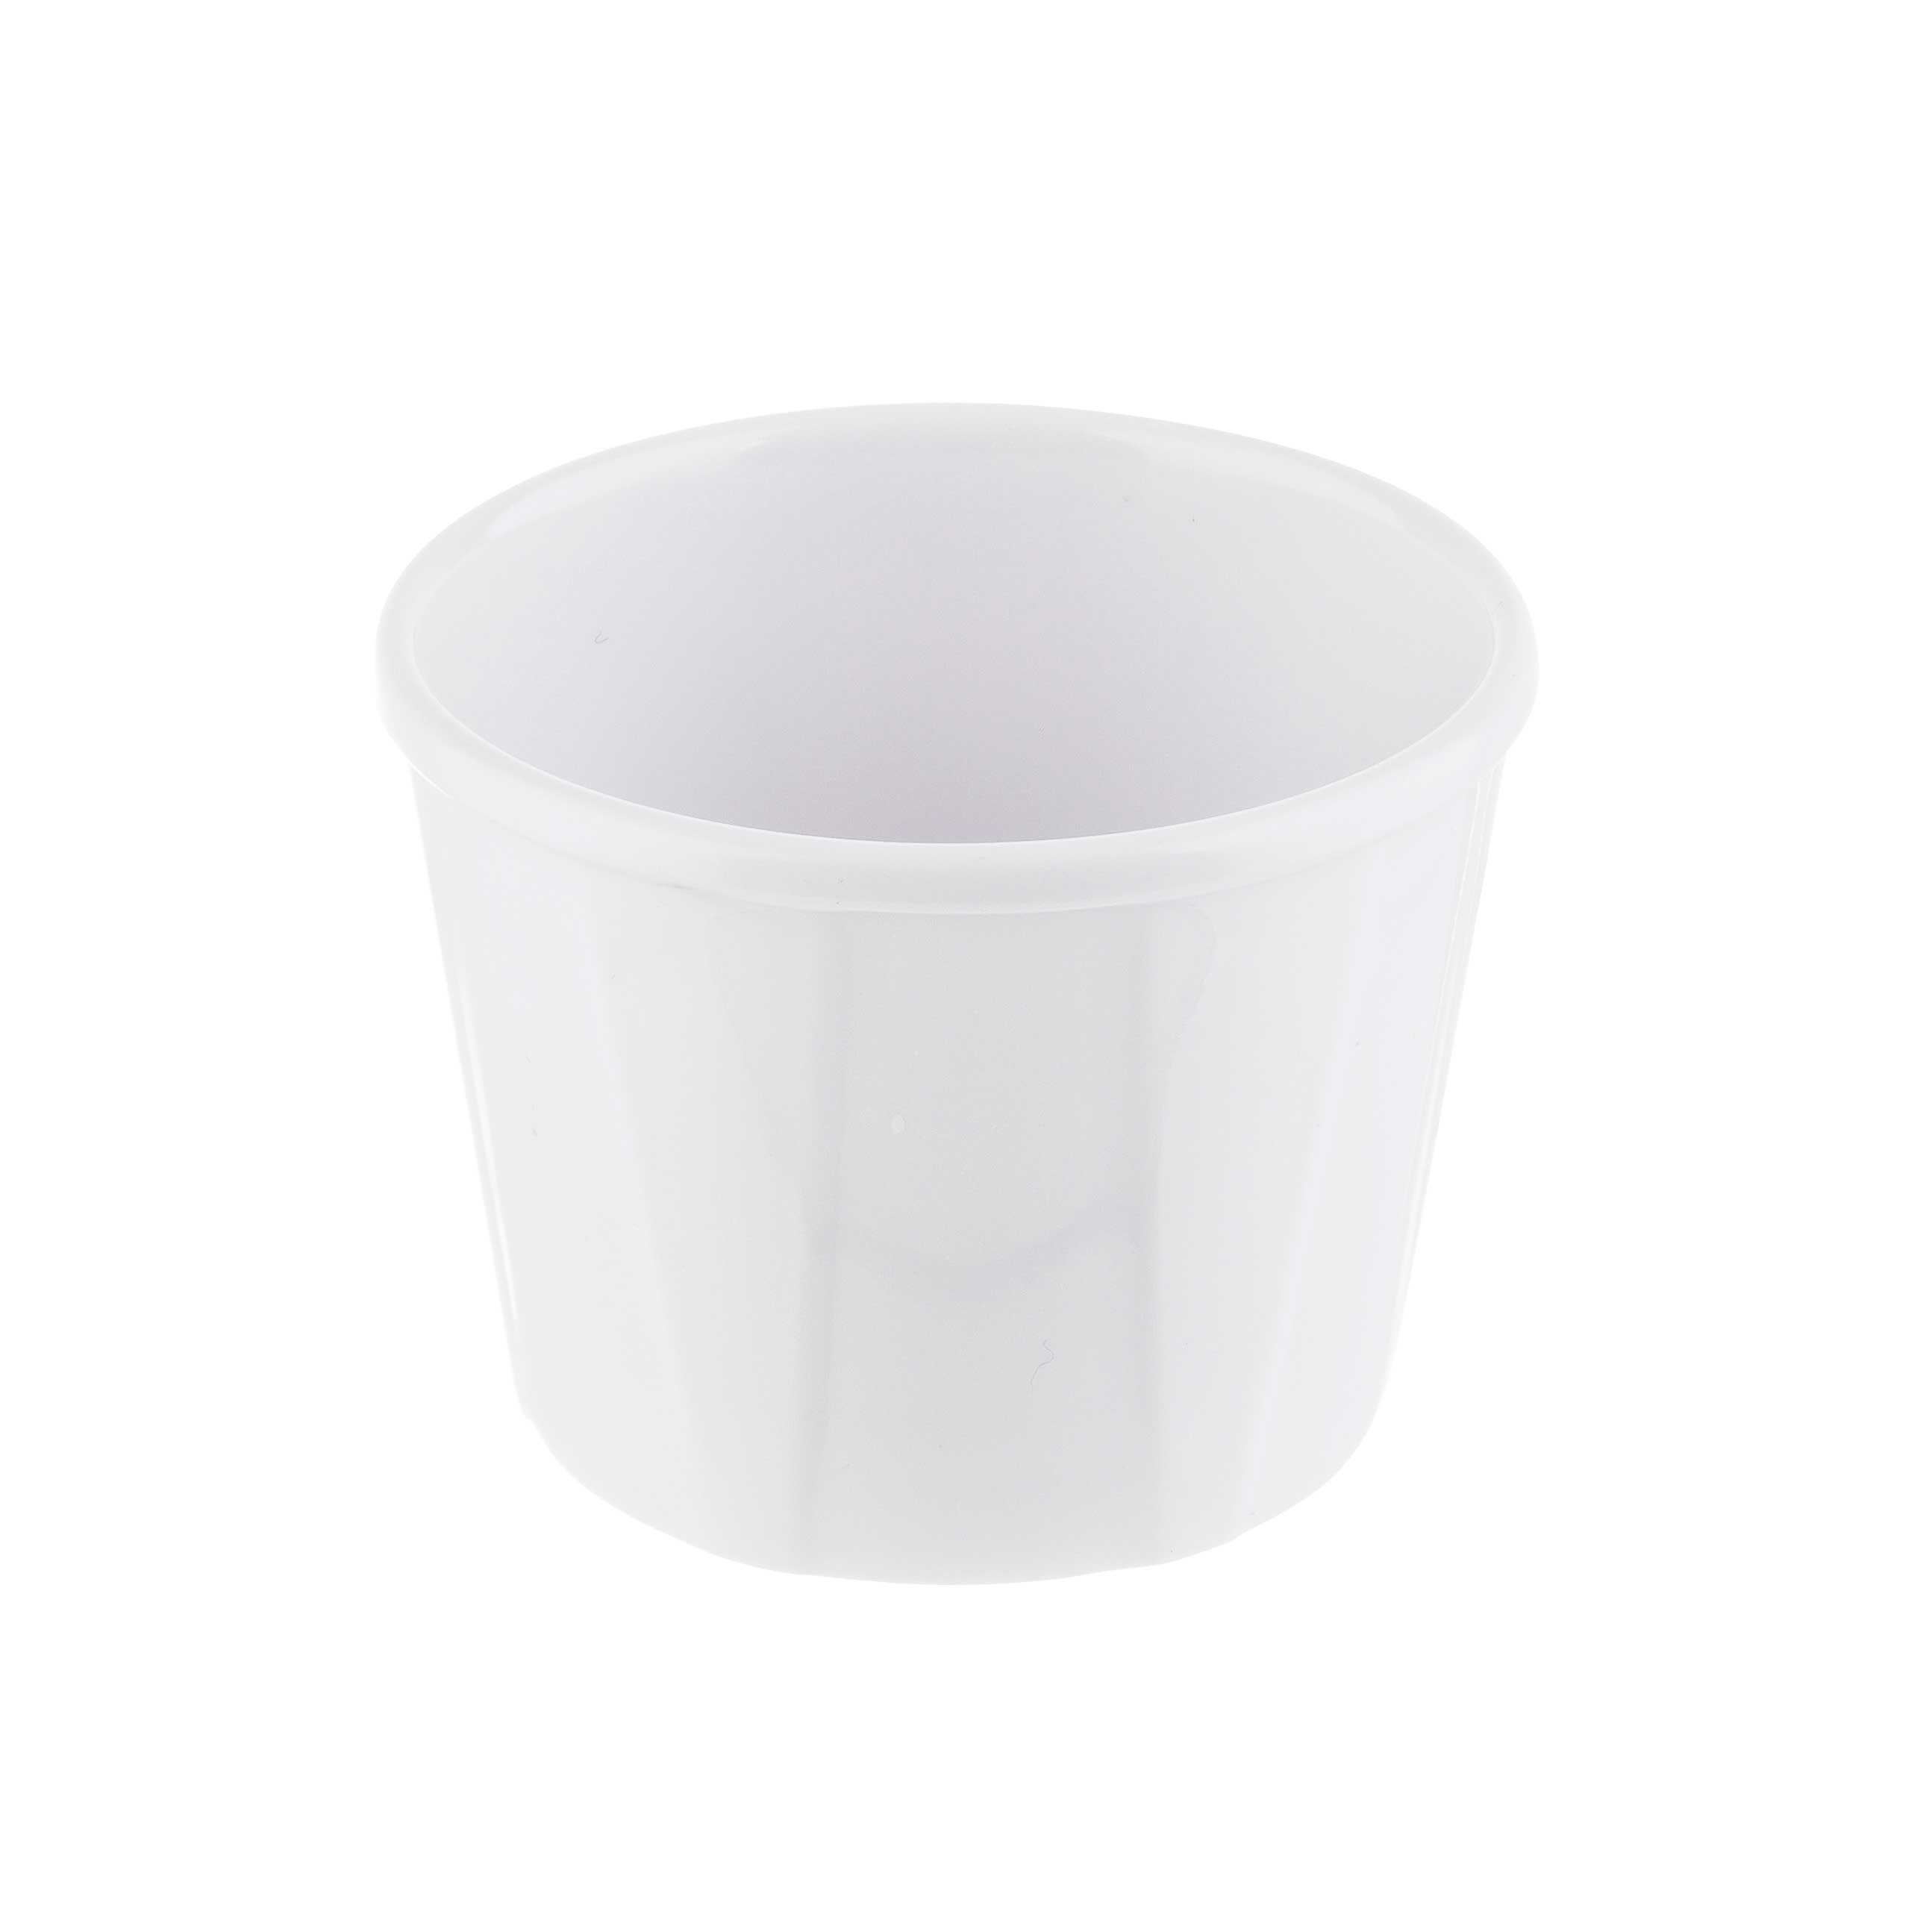 TableCraft Products 240003 souffle bowl / dish